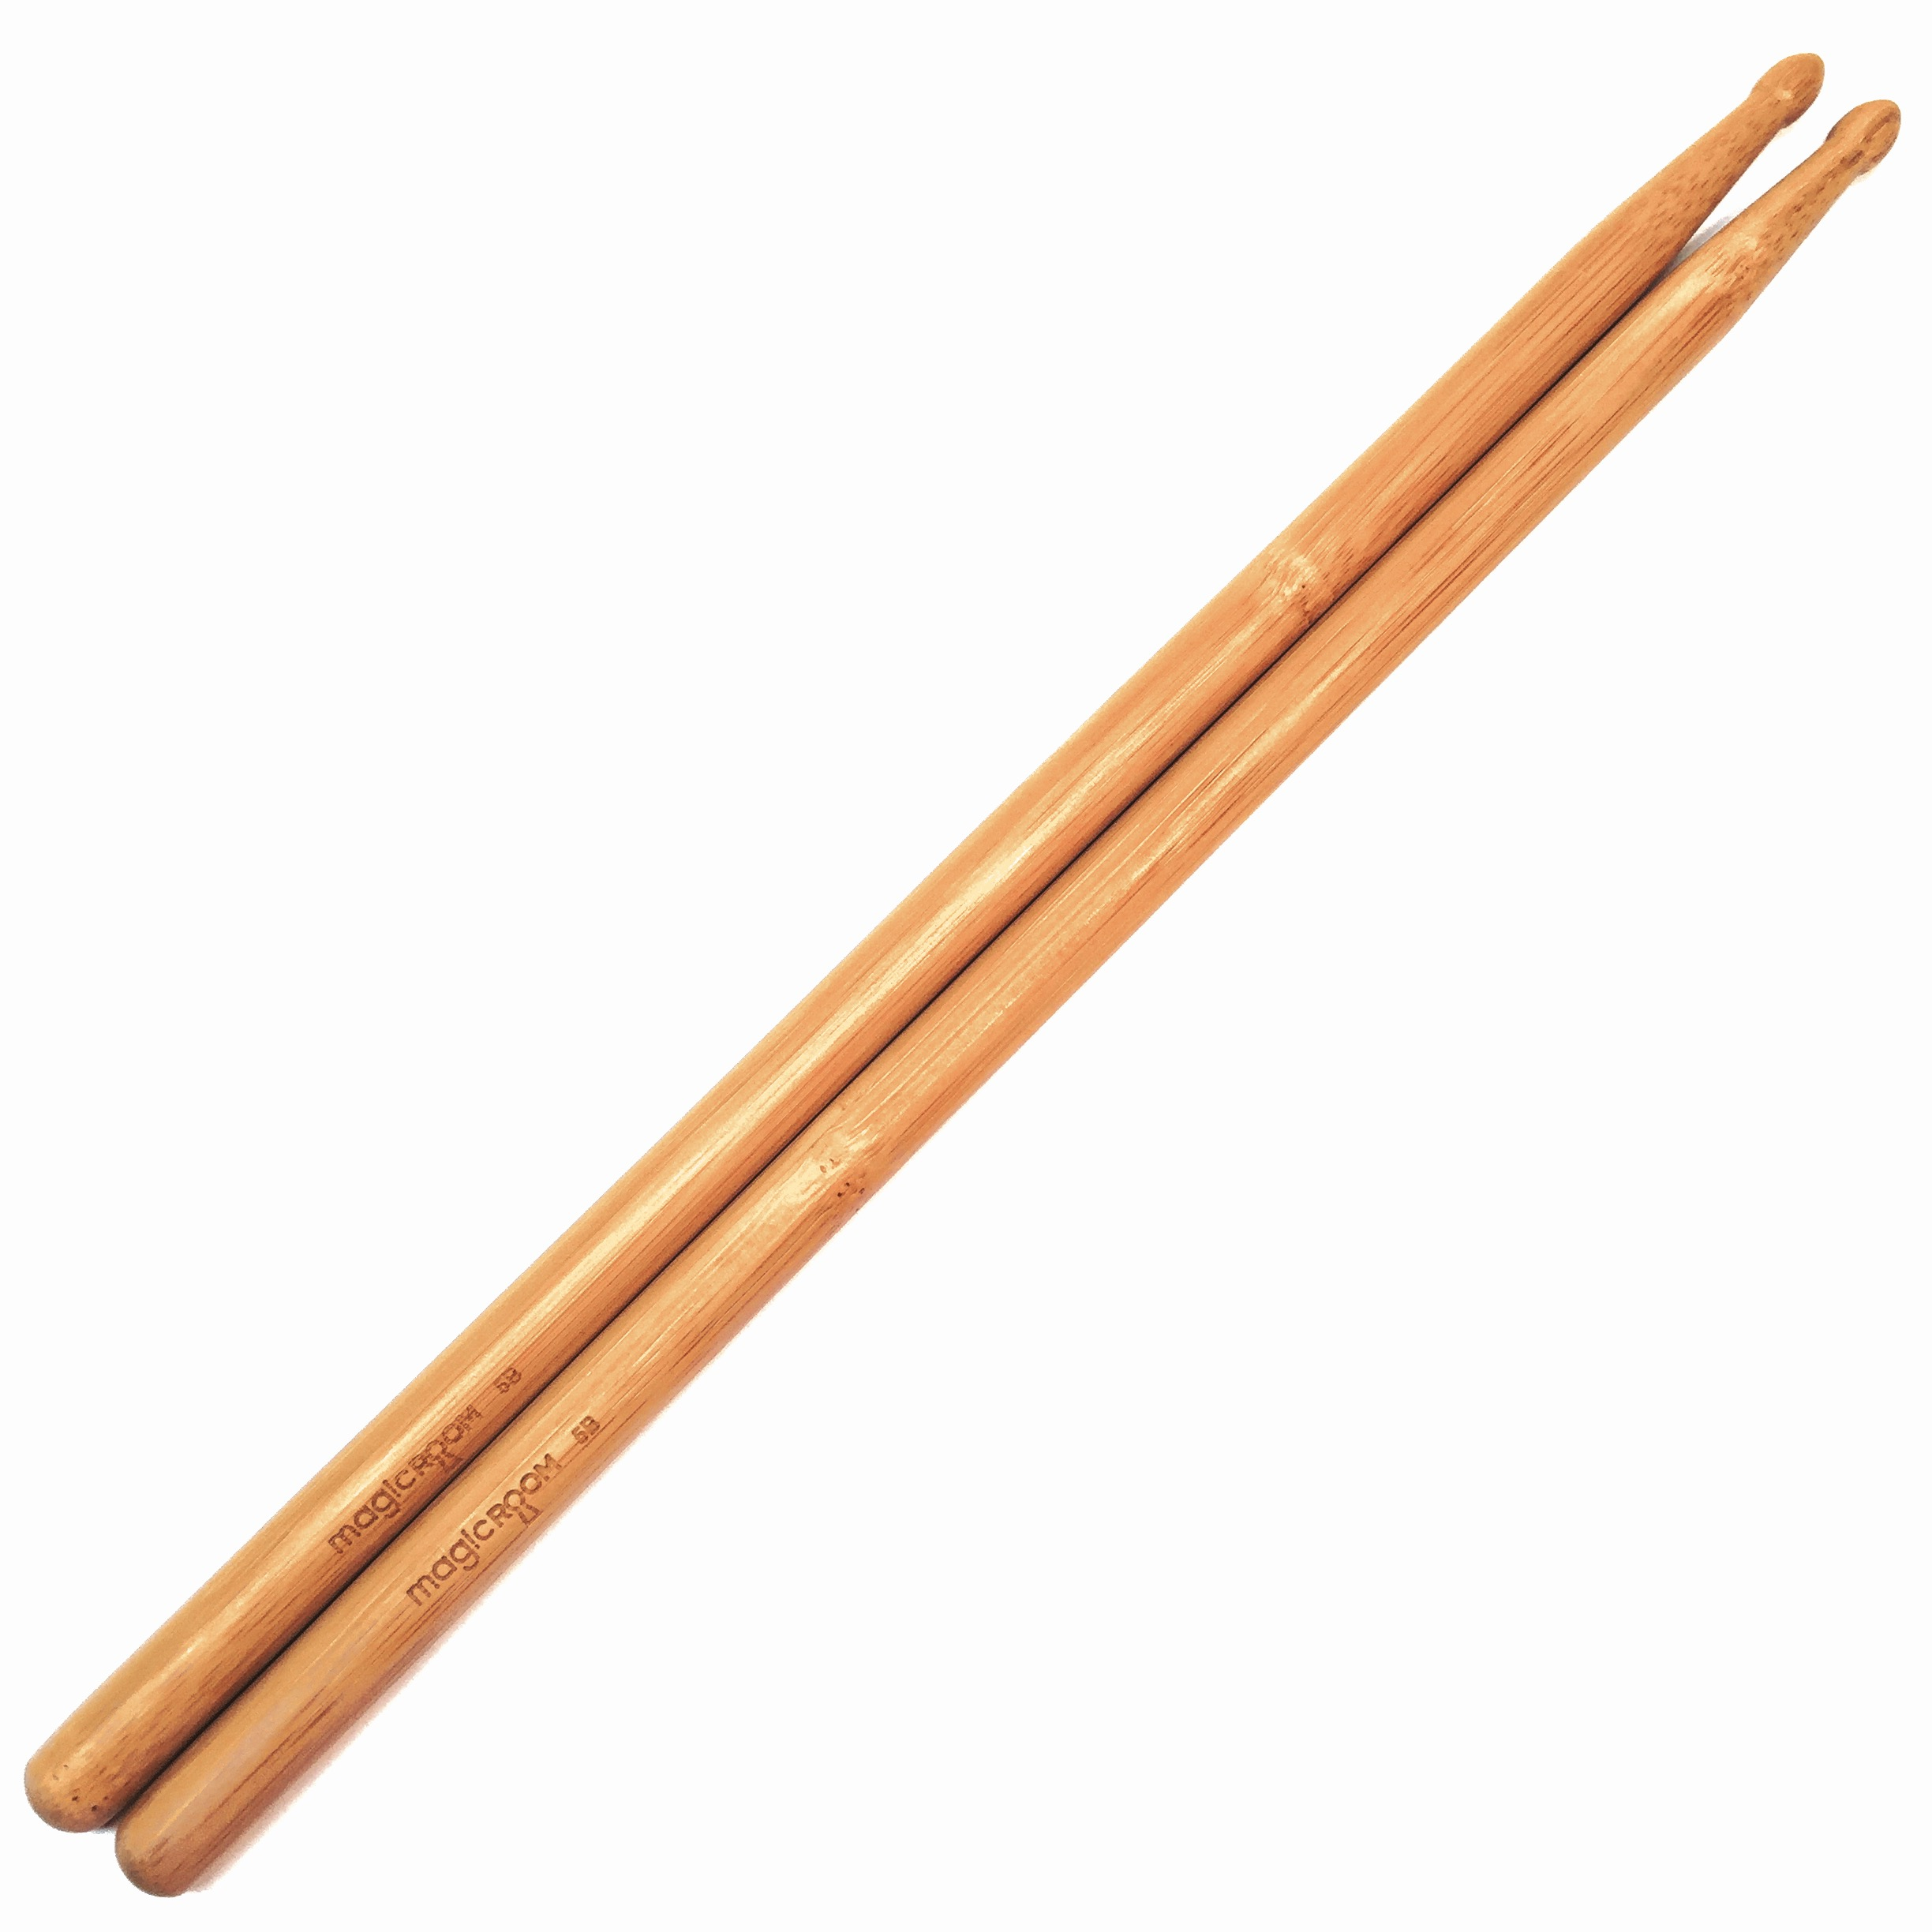 Magic Room Brand 5B bamboo drumsticks